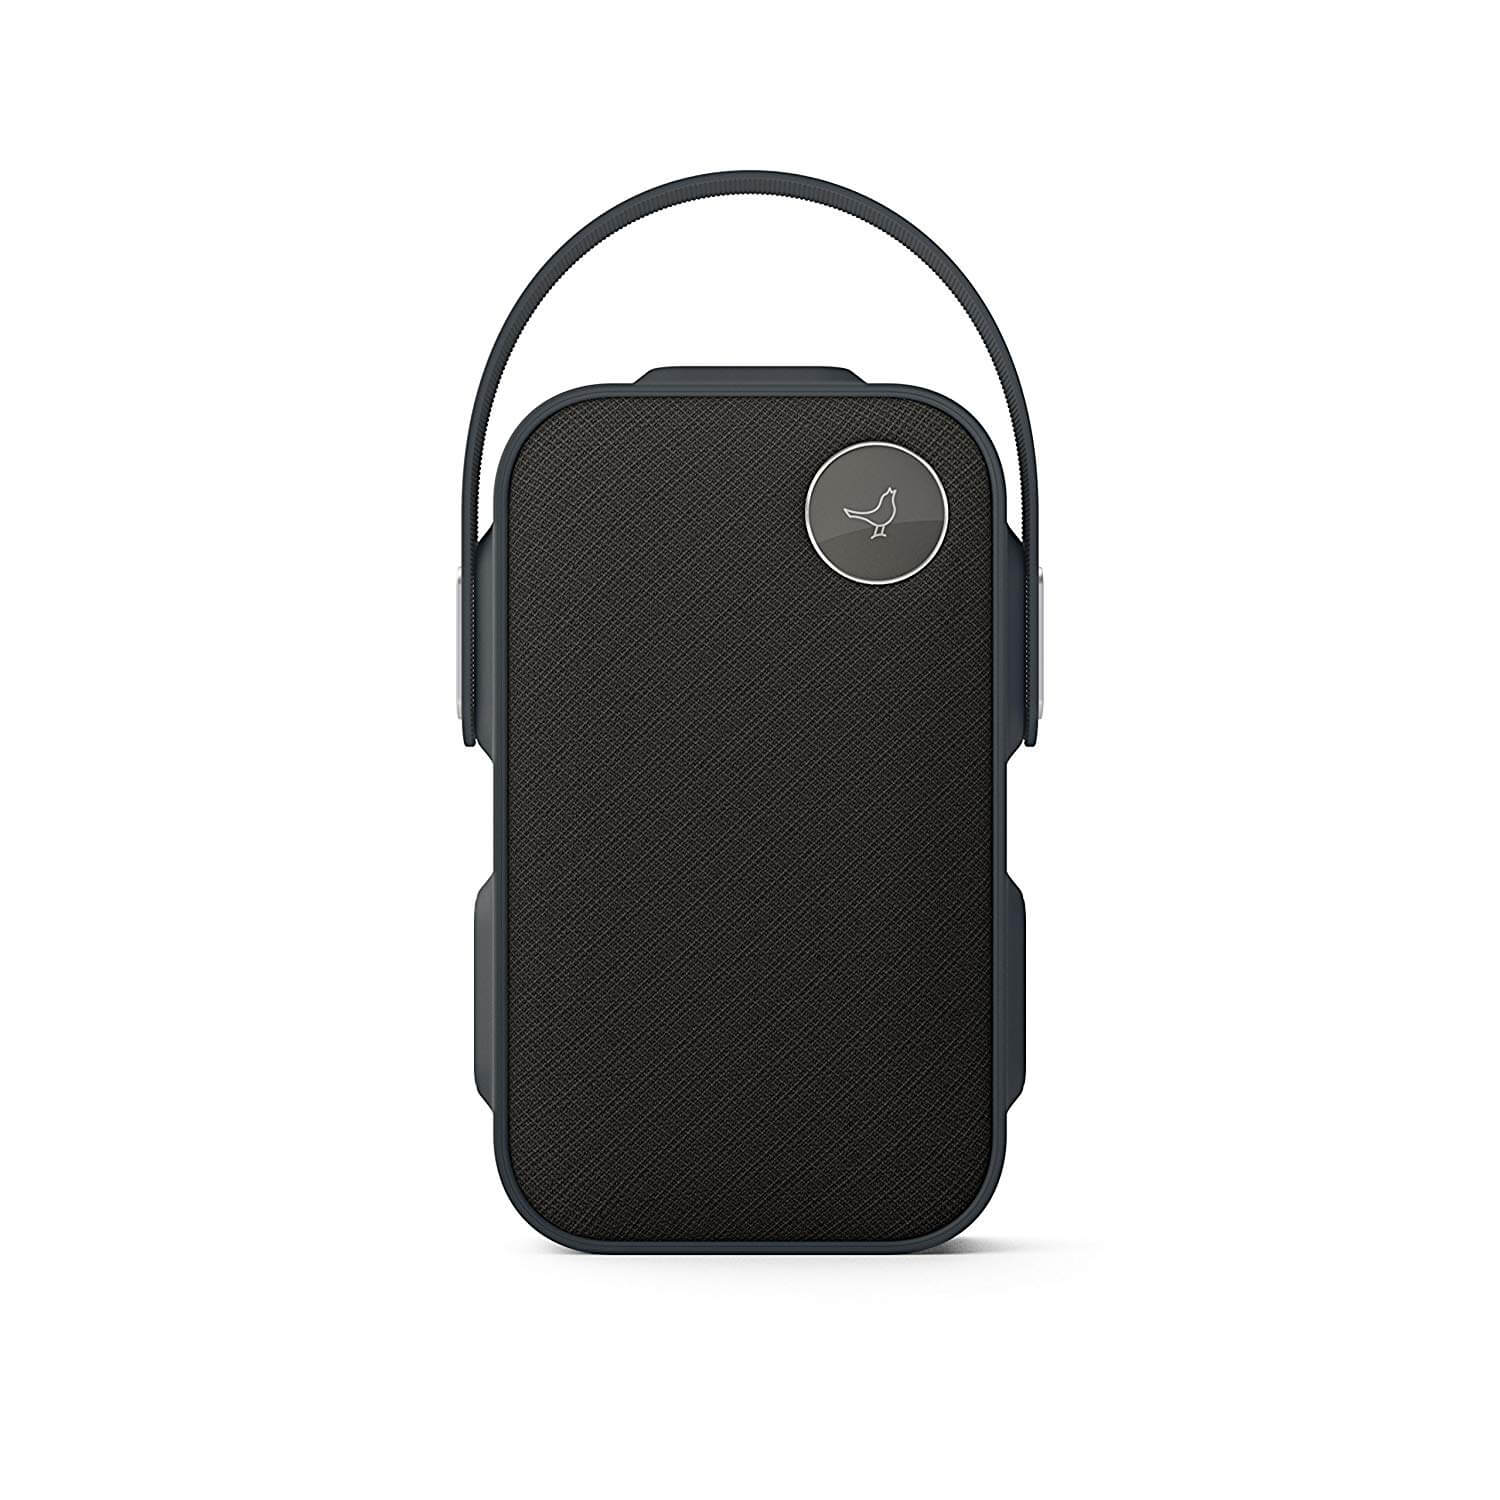 Libratone ONE Click Bluetooth Speaker (360° Sound, Touch Operation, IPX4 Splashproof, 12h Rechargeable Battery) - Graphite Grey